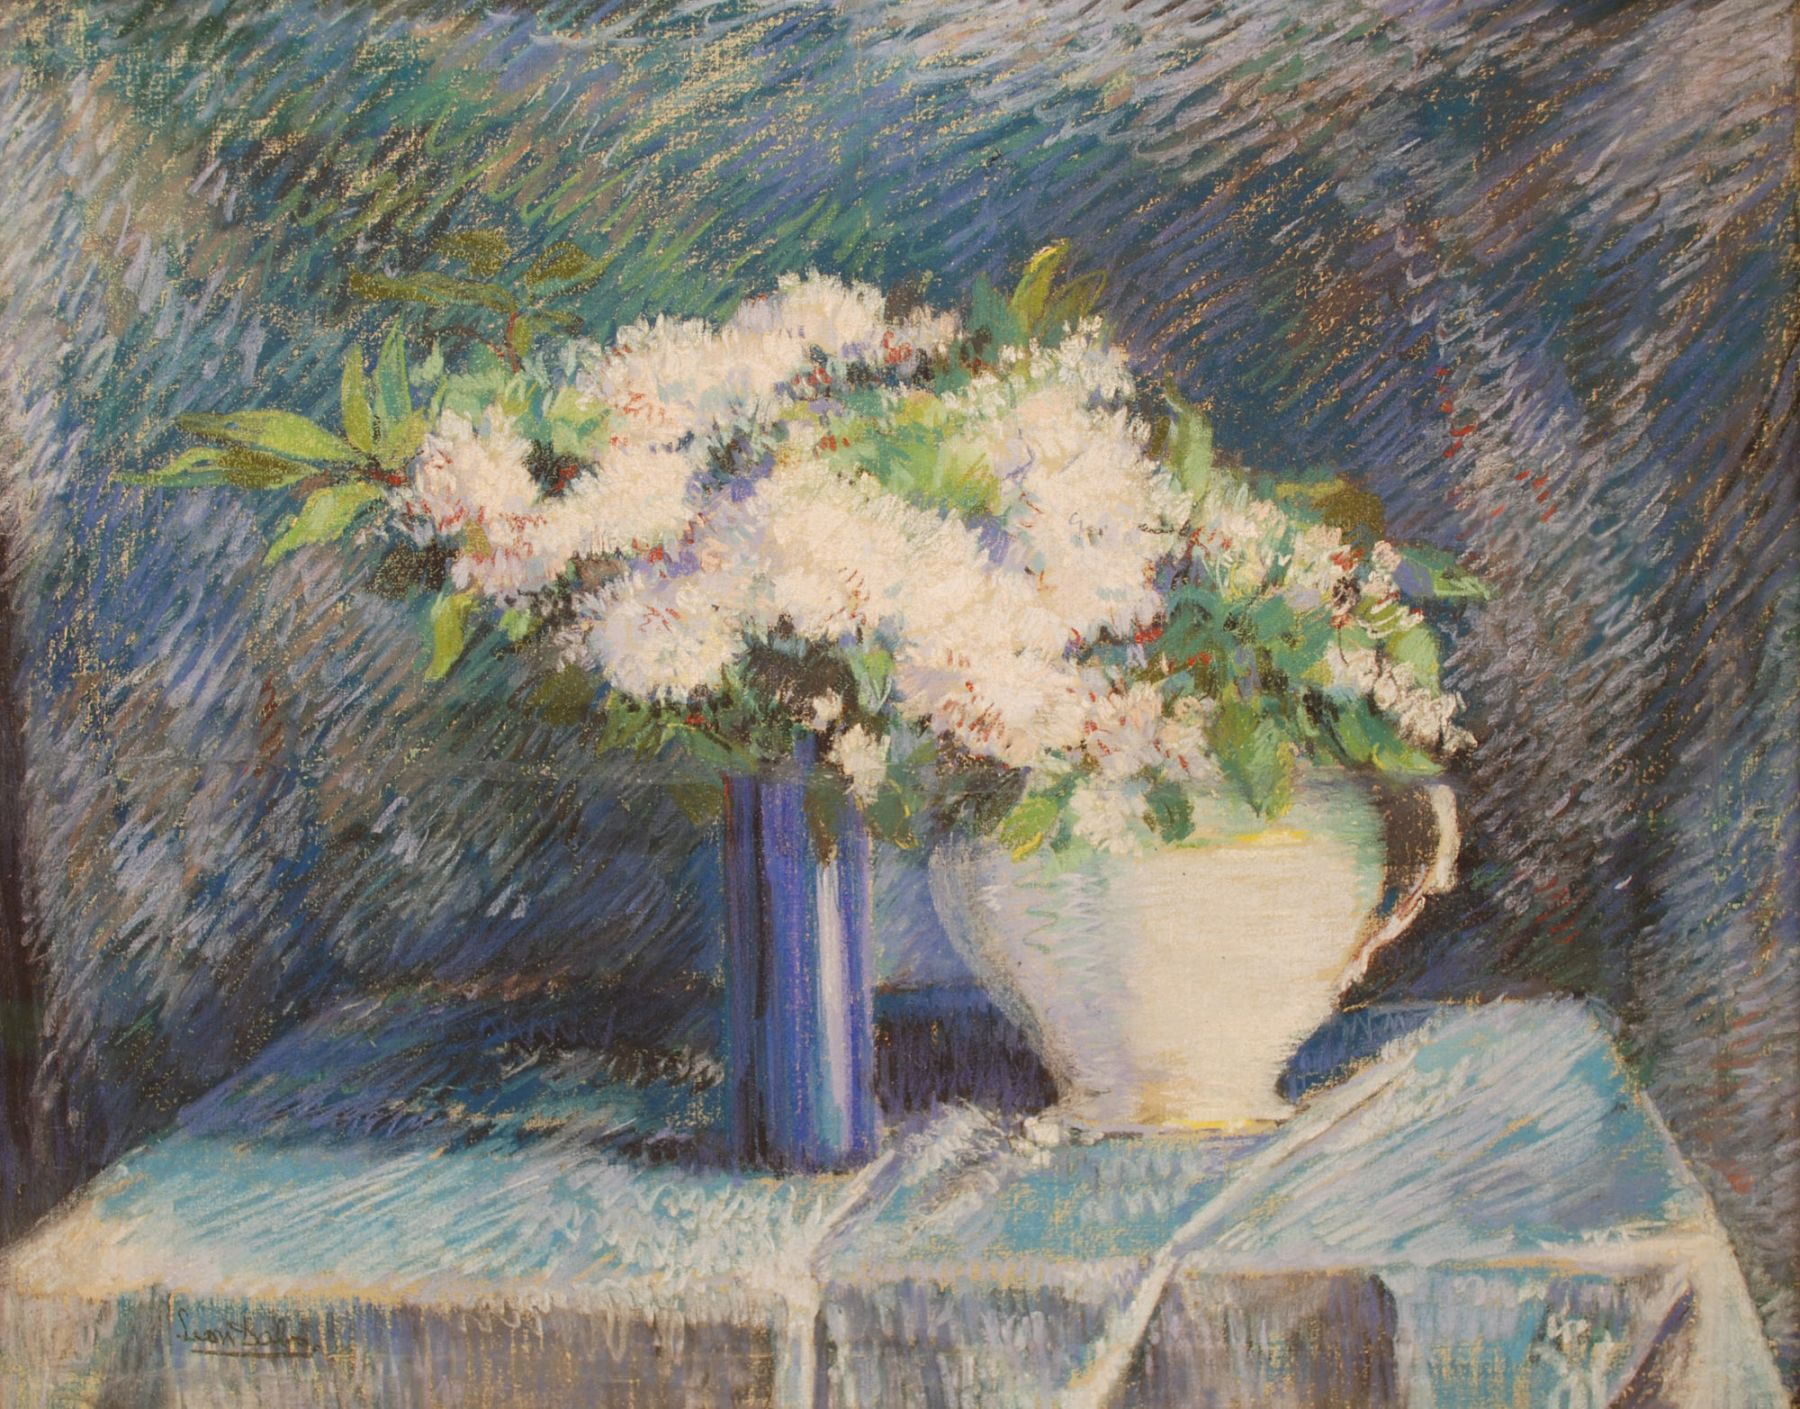 "LEON DABO (1864-1960)   Inventory ID 155125  Flowers in Blue and White Vases, 1899 23.25 x 29.25 inches  |  Pastel on linen Signed lower left  Exhibited The Summer Impressionists, 2014; Leon Dabo: Toutes Les Fleurs, 2012;   Published in Artist's of Michigan from the Nineteenth Century,"" Muskegon Museum of Art, 1987, p. 103.  This painting traveled to museums throughout the State.  Published The Pastels of Leon Dabo, pages 7 and 12 and 48. ""Artist's of Michigan from the Nineteenth Century,"" page 103."